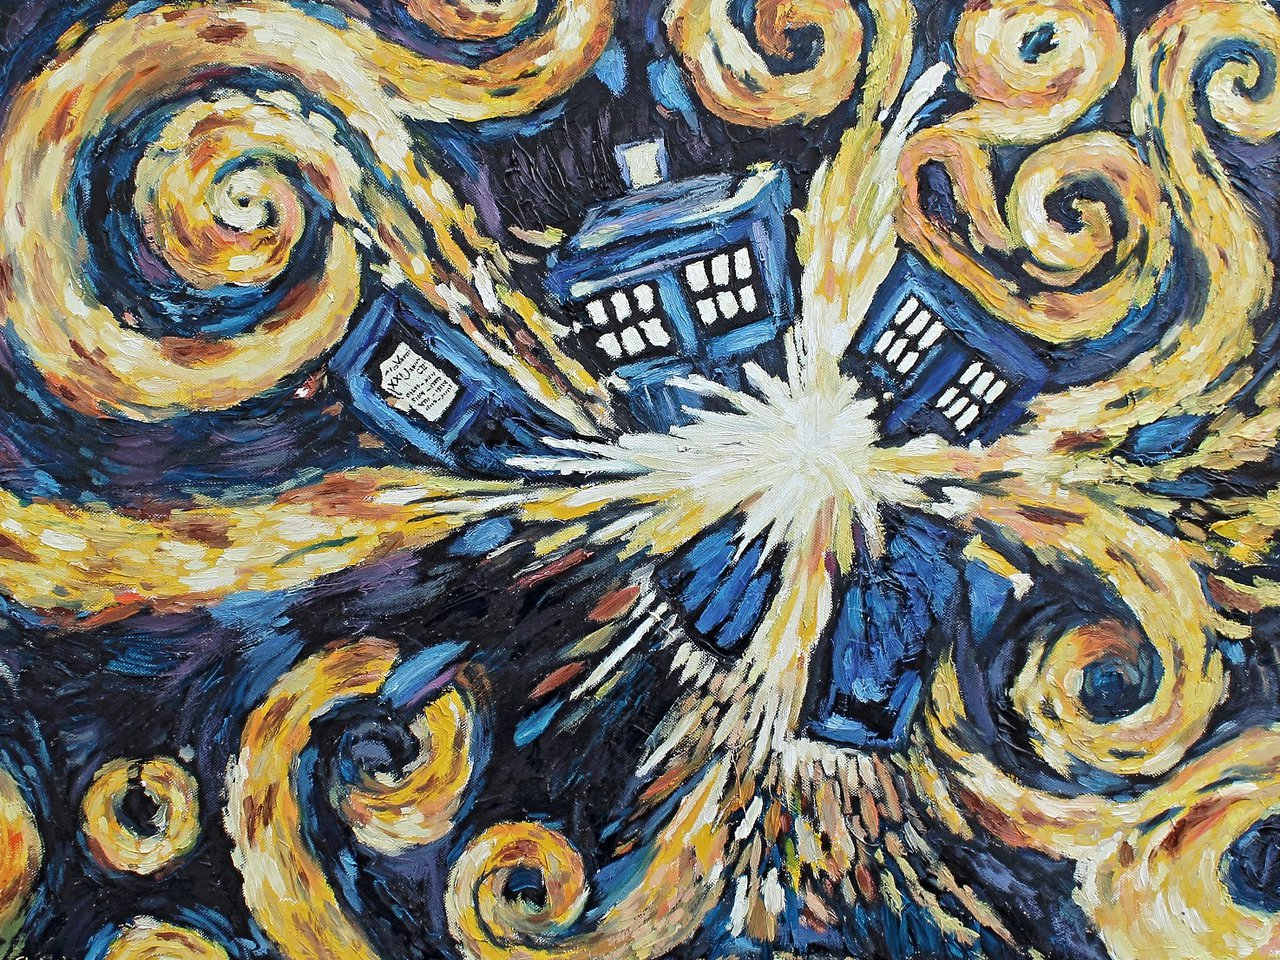 The Pandorica Opens aka Exploding TARDIS by Woolf83 1280x960